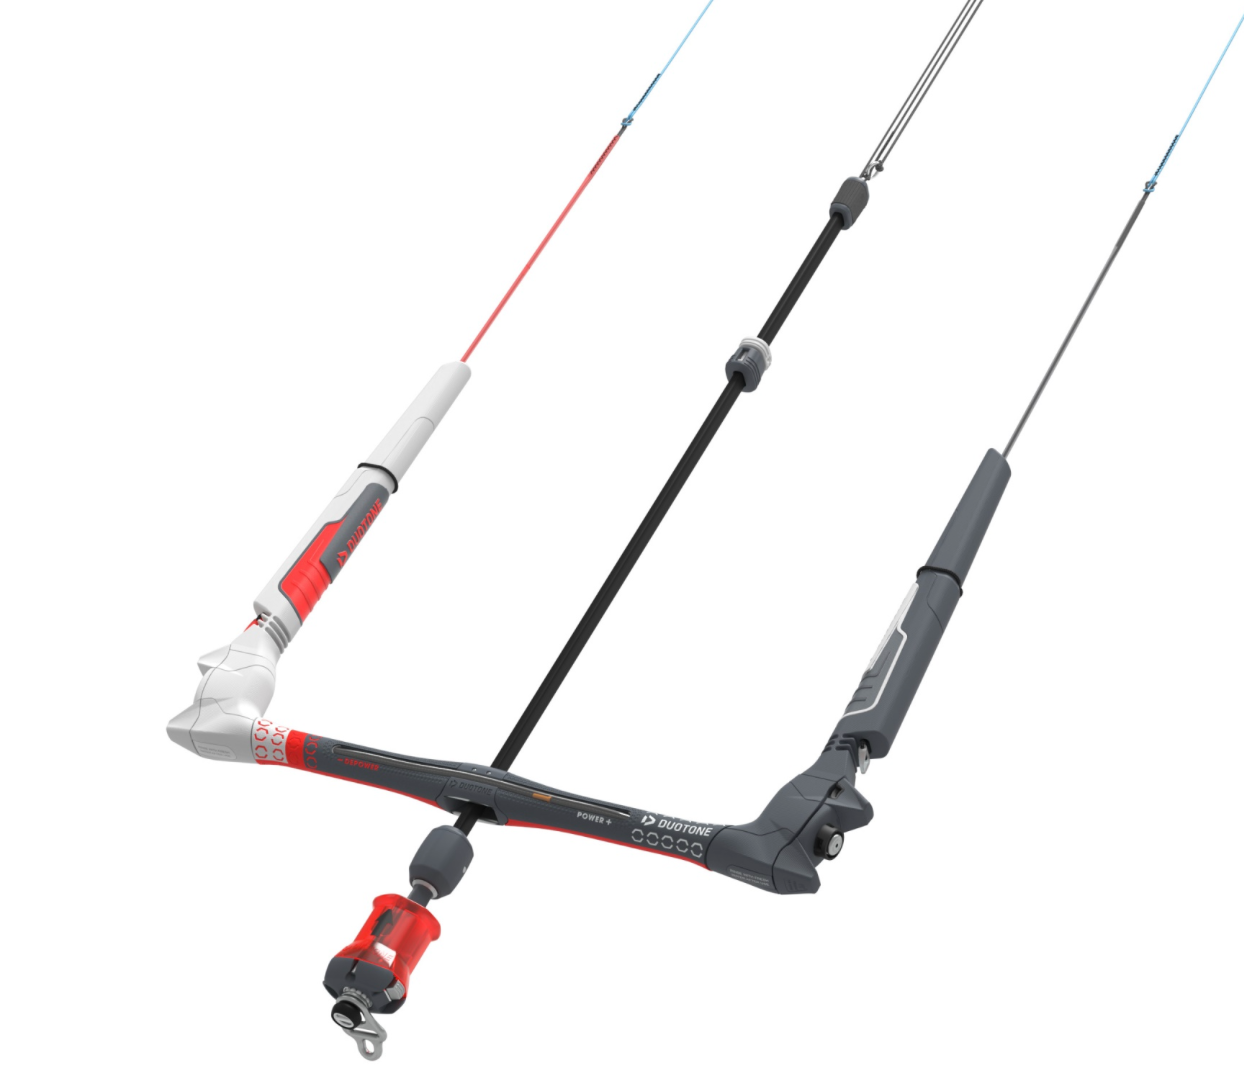 Duotone 2021 click bar with FLY99 Robline lines. The most advanced bar in kiteboarding right now. Less stretching of lines and less thickness, making them create less draft. This means better performance from light wind to strong wind.